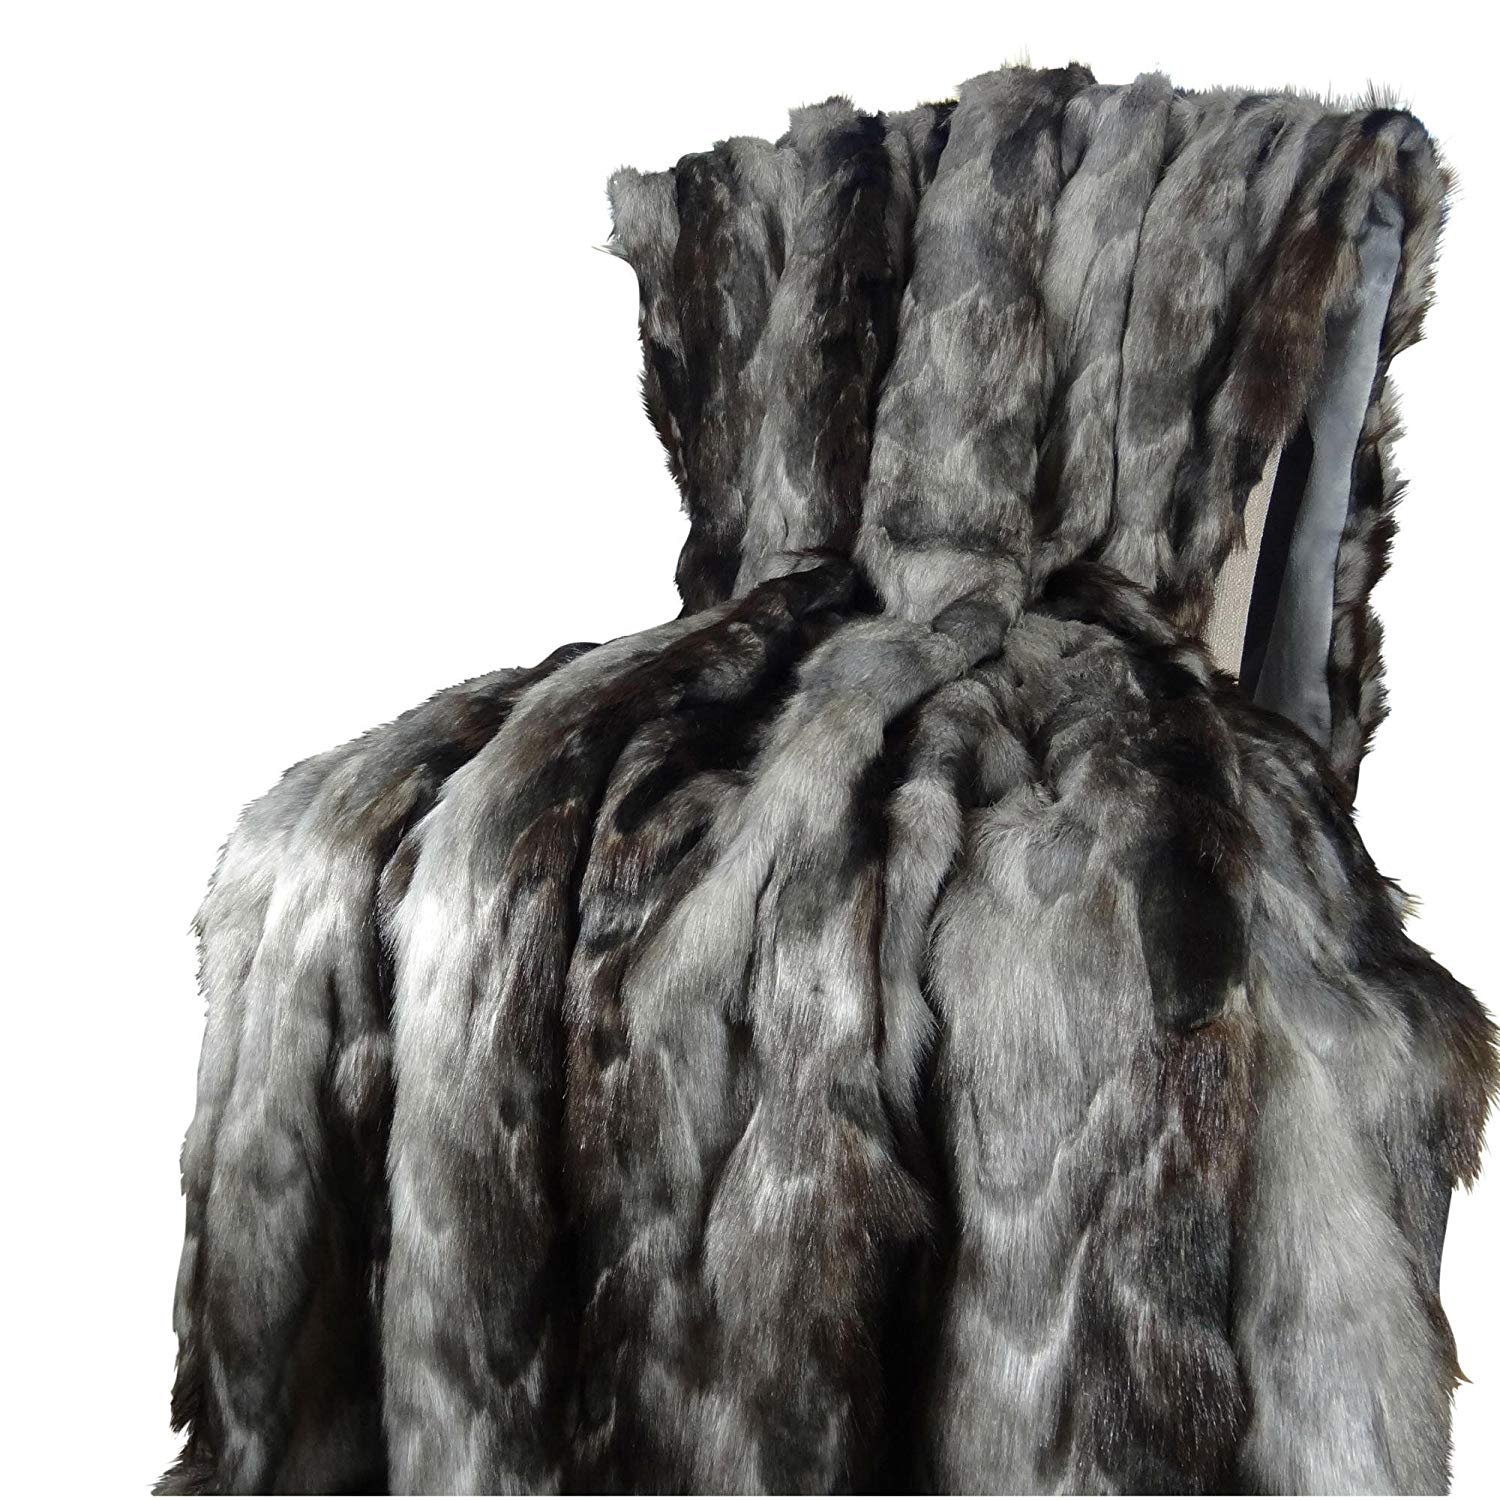 Thomas Collection Exotic Gray Fox Faux Fur Throw Blanket & Bedspread - Gray Charcoal Black Fox Fur - Gray Fox Throw Blanket - Luxury Soft Fox Faux Fur, Handmade in USA, 16439